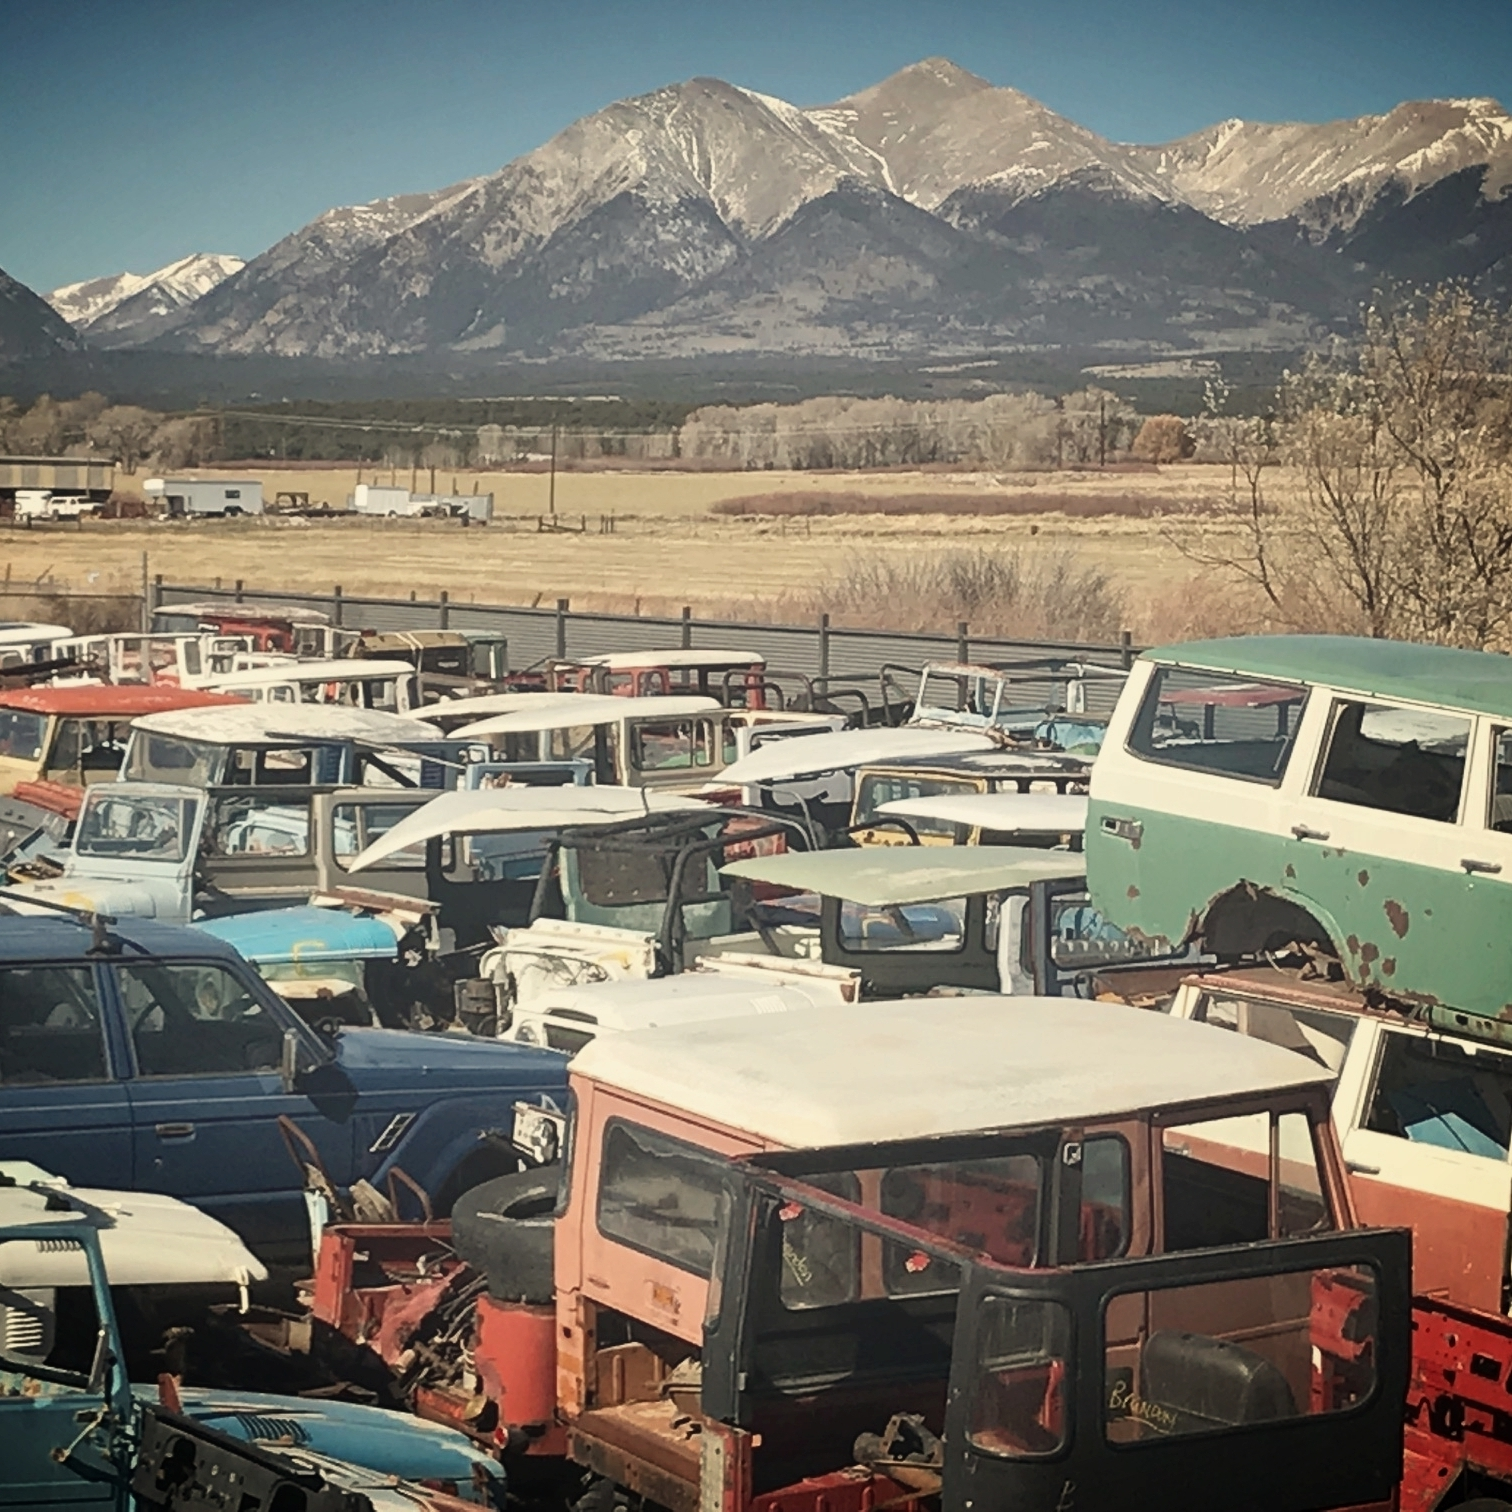 We have over 250 Toyota fj40, fj43, fj55, fj60, fj62, fj80, fzj80 land Cruisers in our Salvage yard ranging from 1962 - 1997